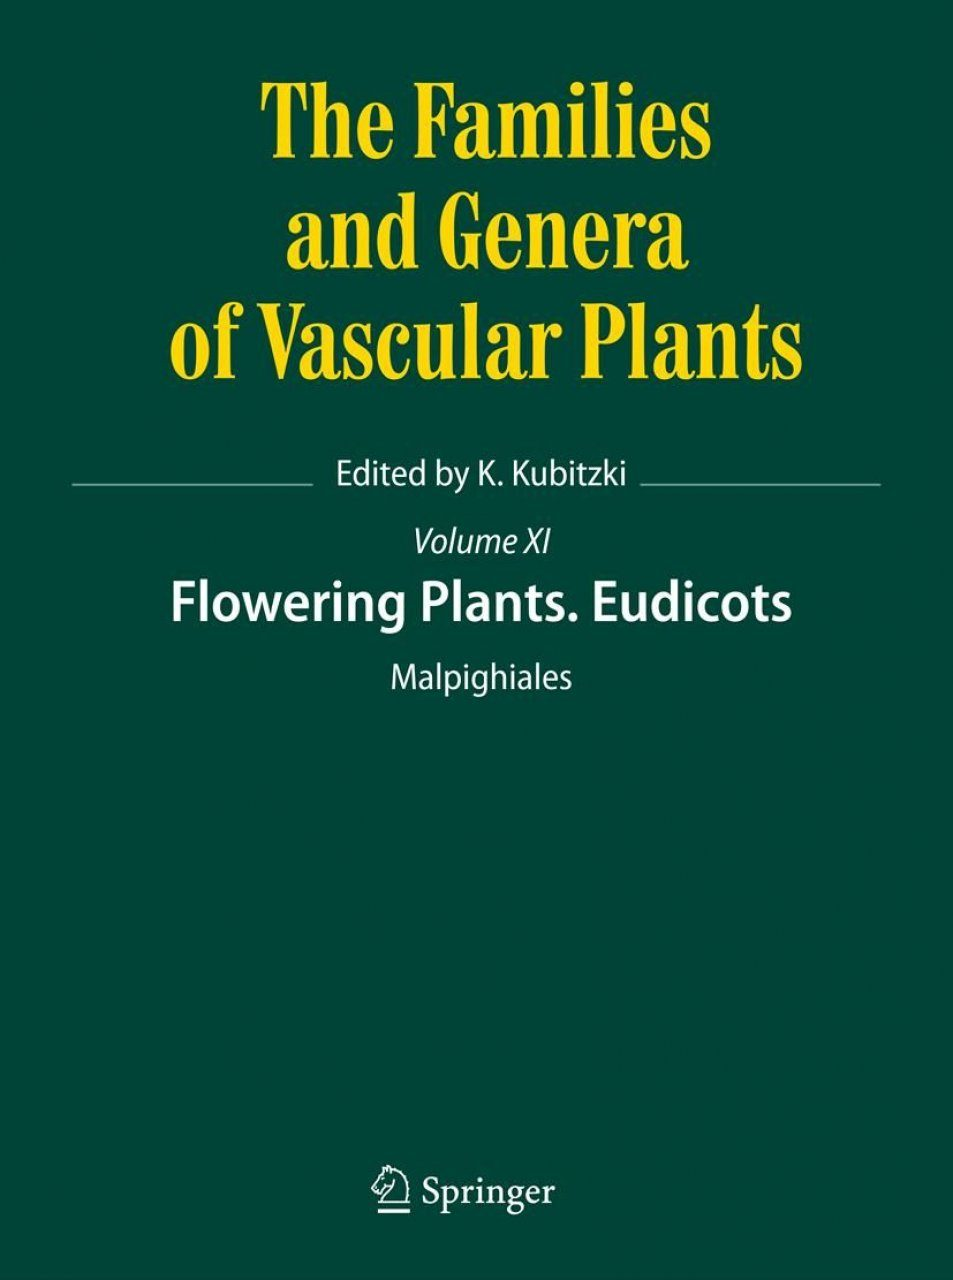 The Families and Genera of Vascular Plants, Volume 11